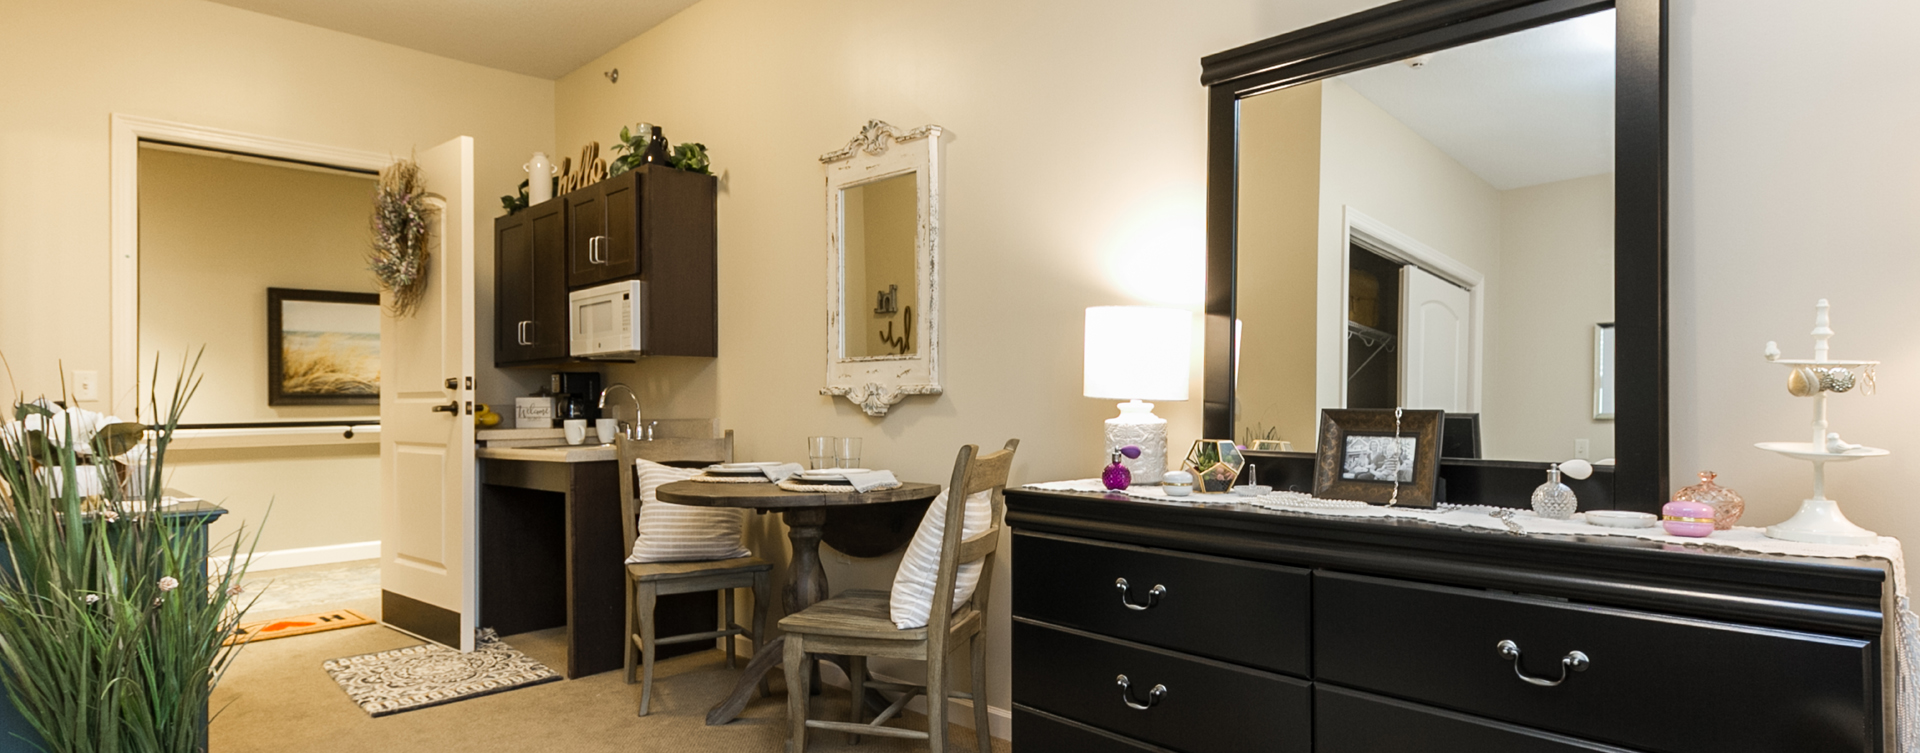 Get a new lease on life with a cozy apartment at Bickford of Virginia Beach